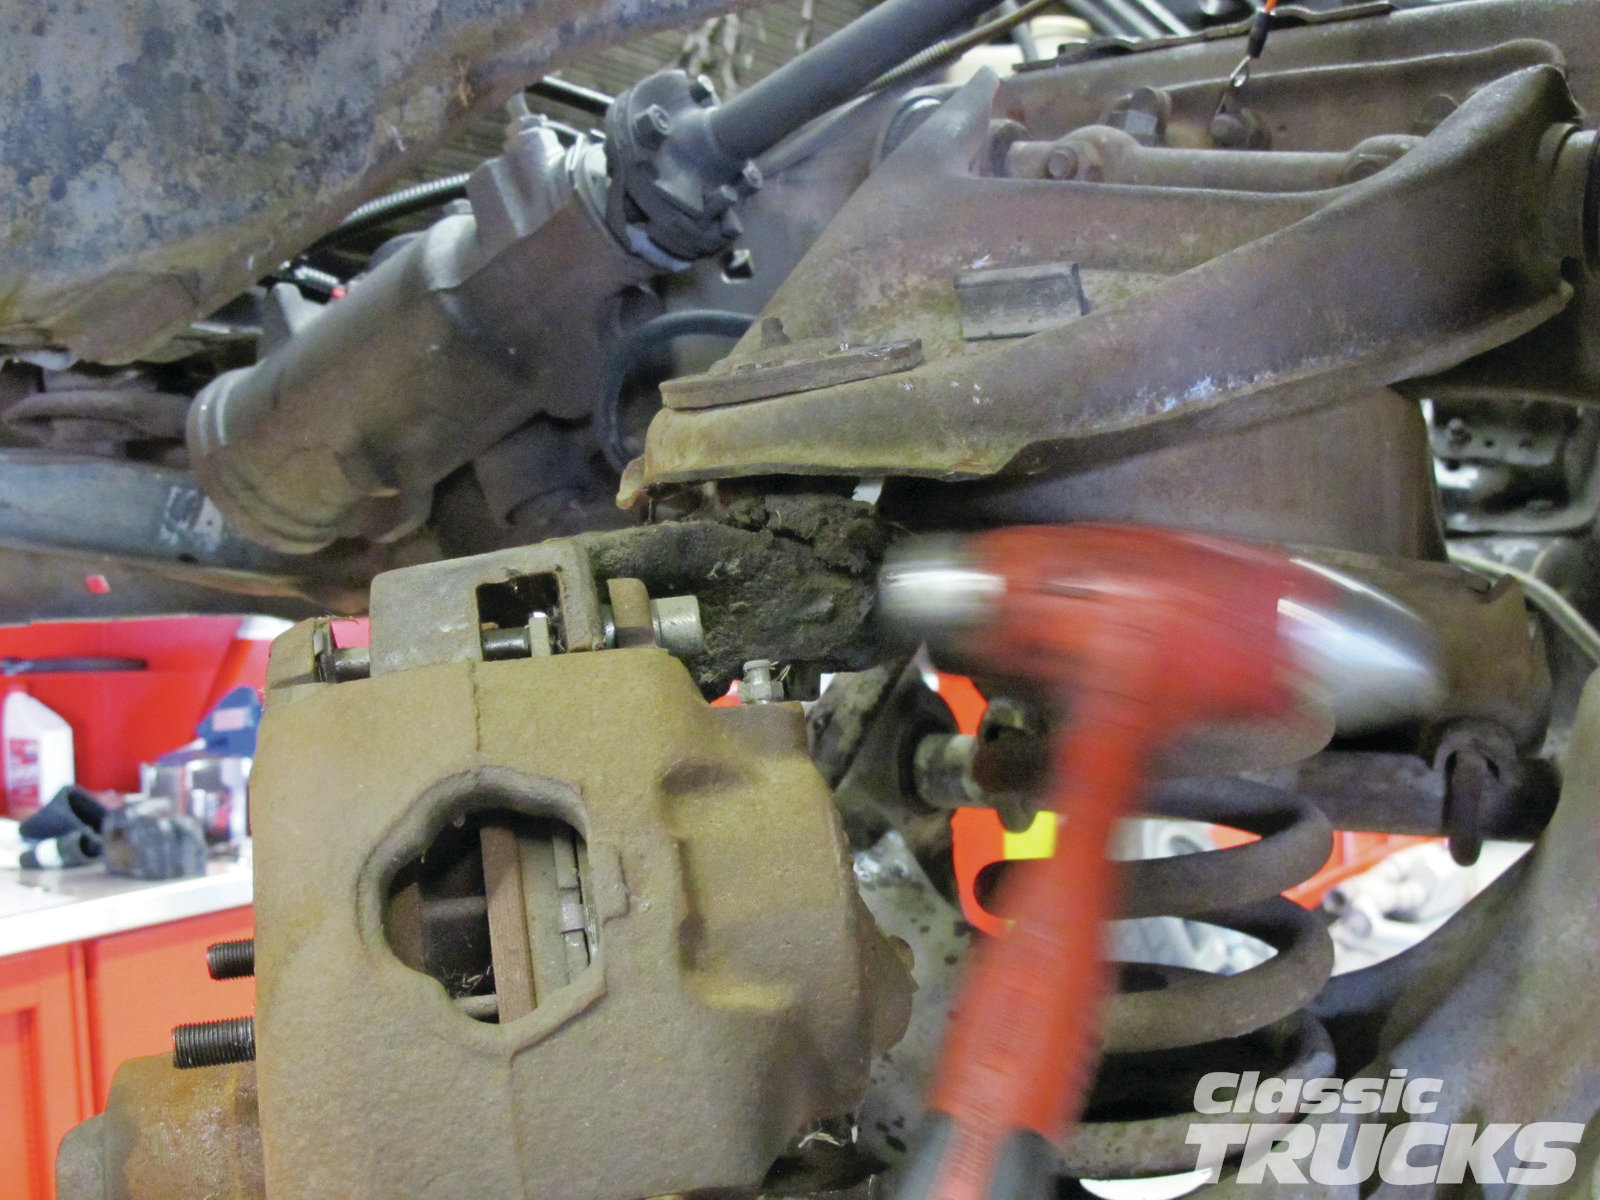 05. One of the hardest parts to remove is the upper and lower control arm tapered joint. They become frozen/rusted in the spindle and have to be shocked out with a hammer. Make sure to hit the spindle side and not the control arm.